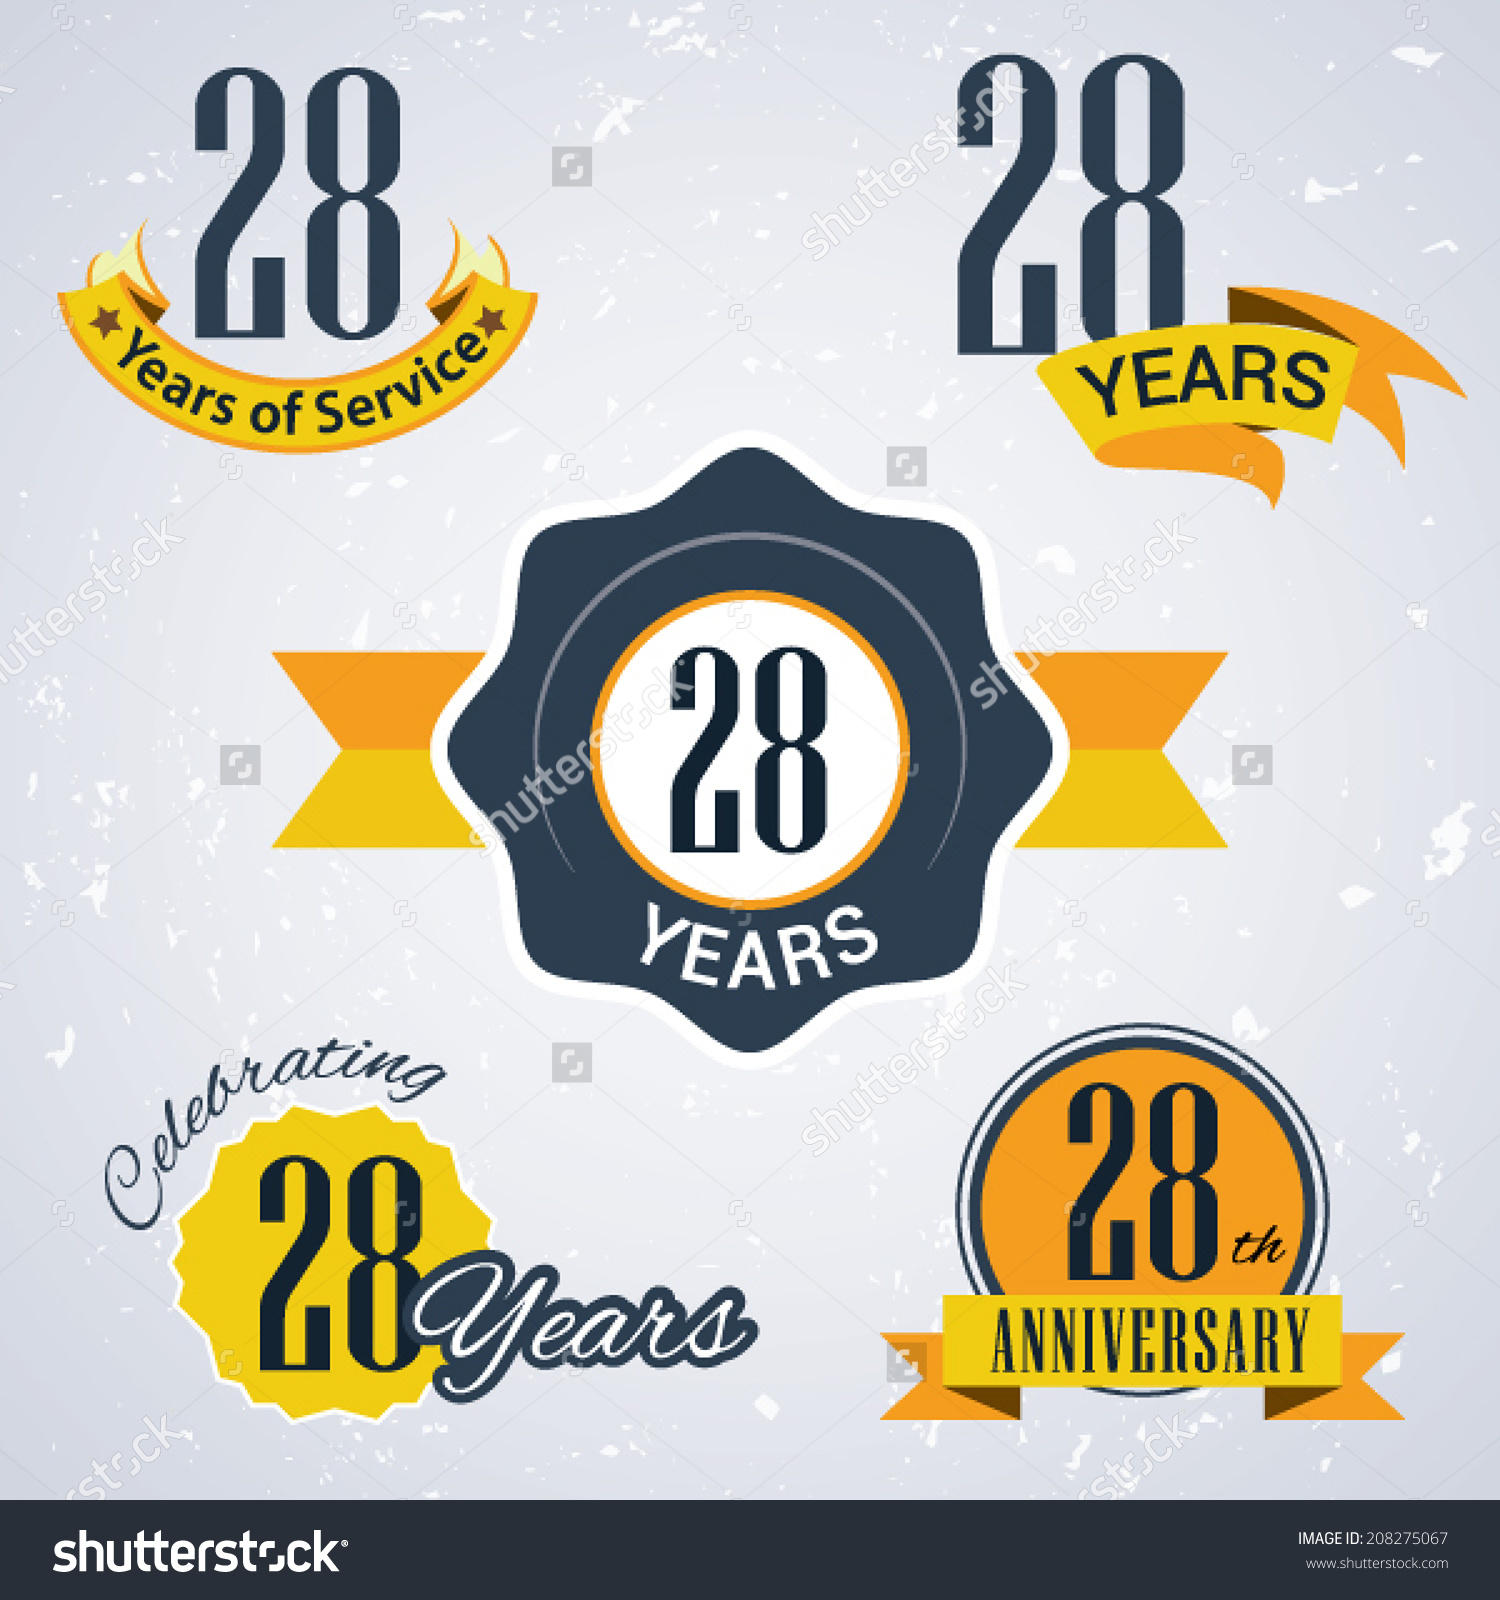 28 Years Service 28 Years Celebrating Stock Vector 208275067.